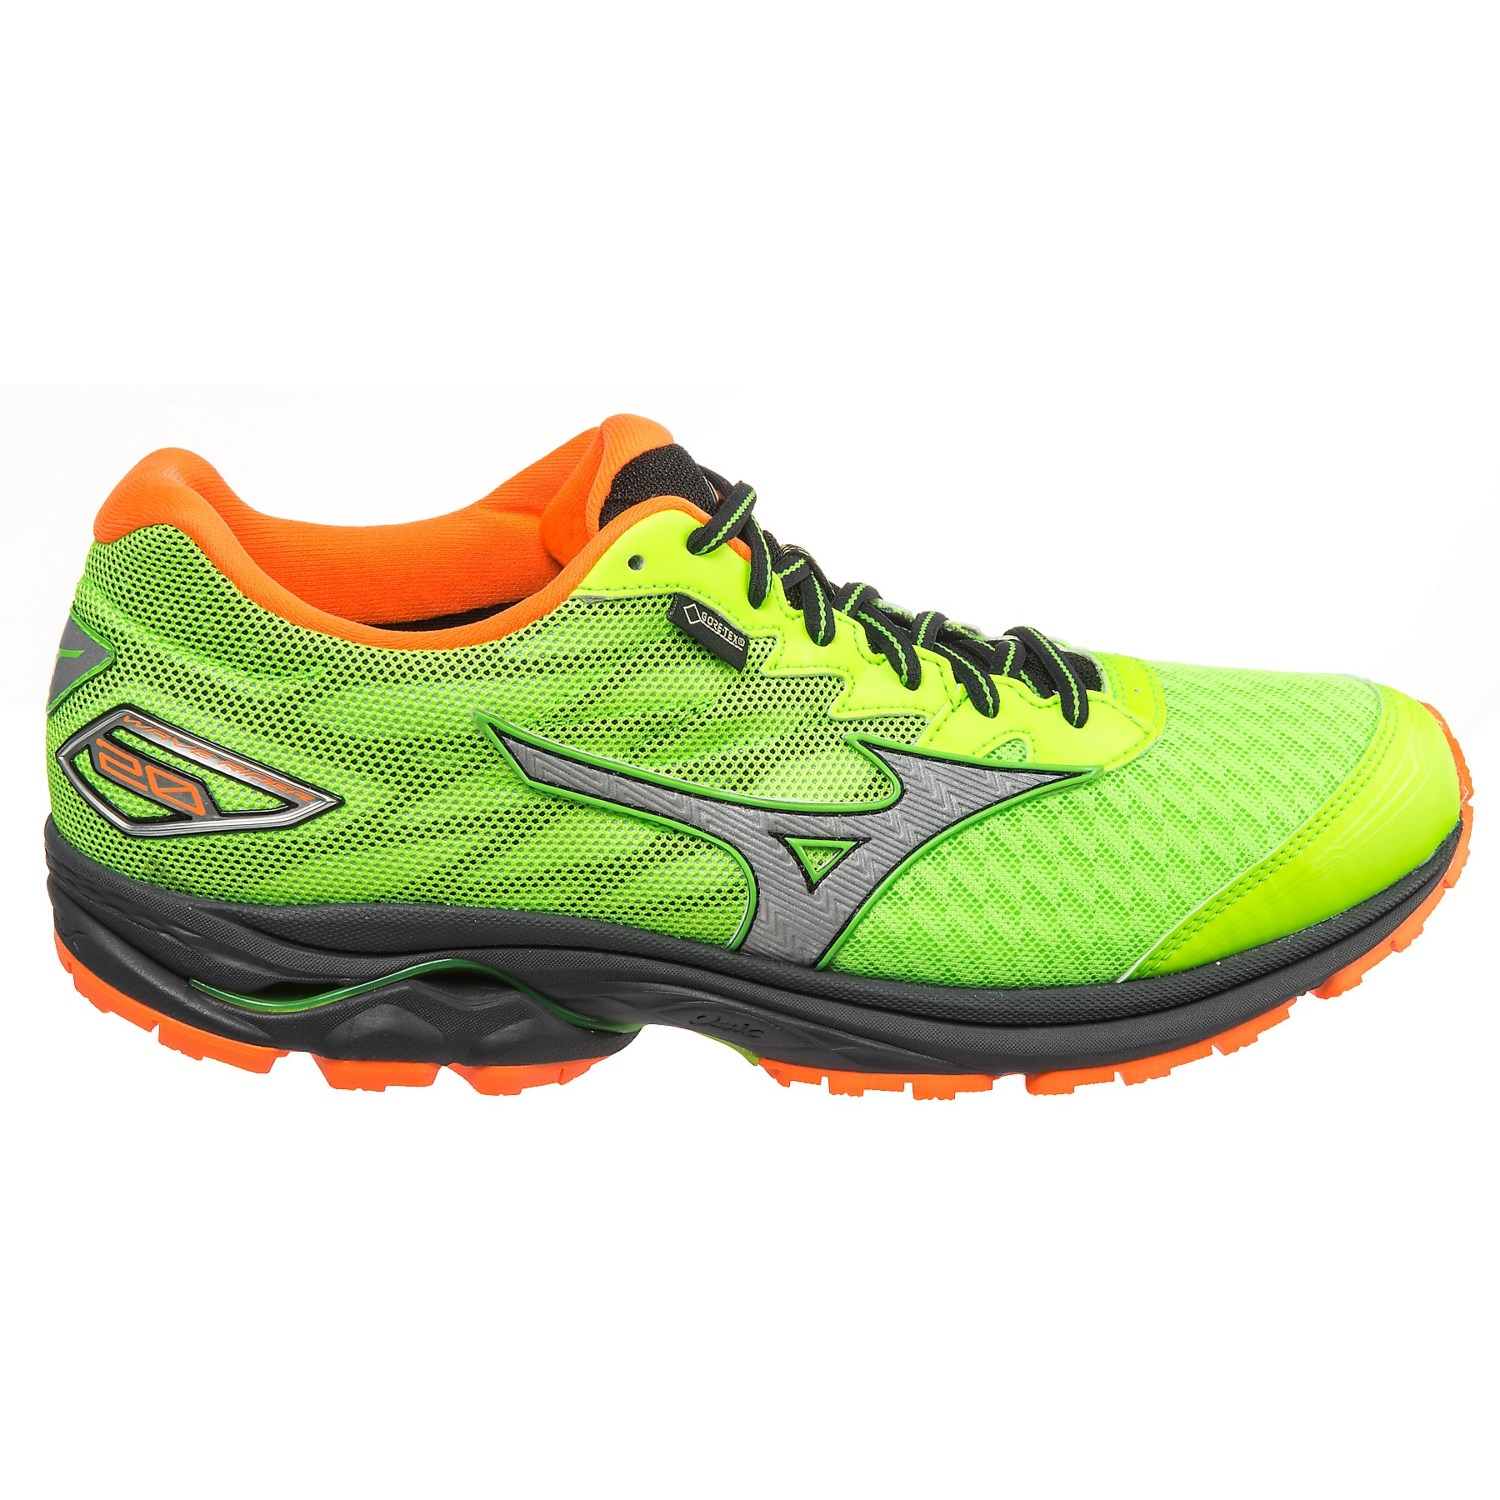 a88d4e26a1e3 Buy mizuno running careers > OFF49% Discounts